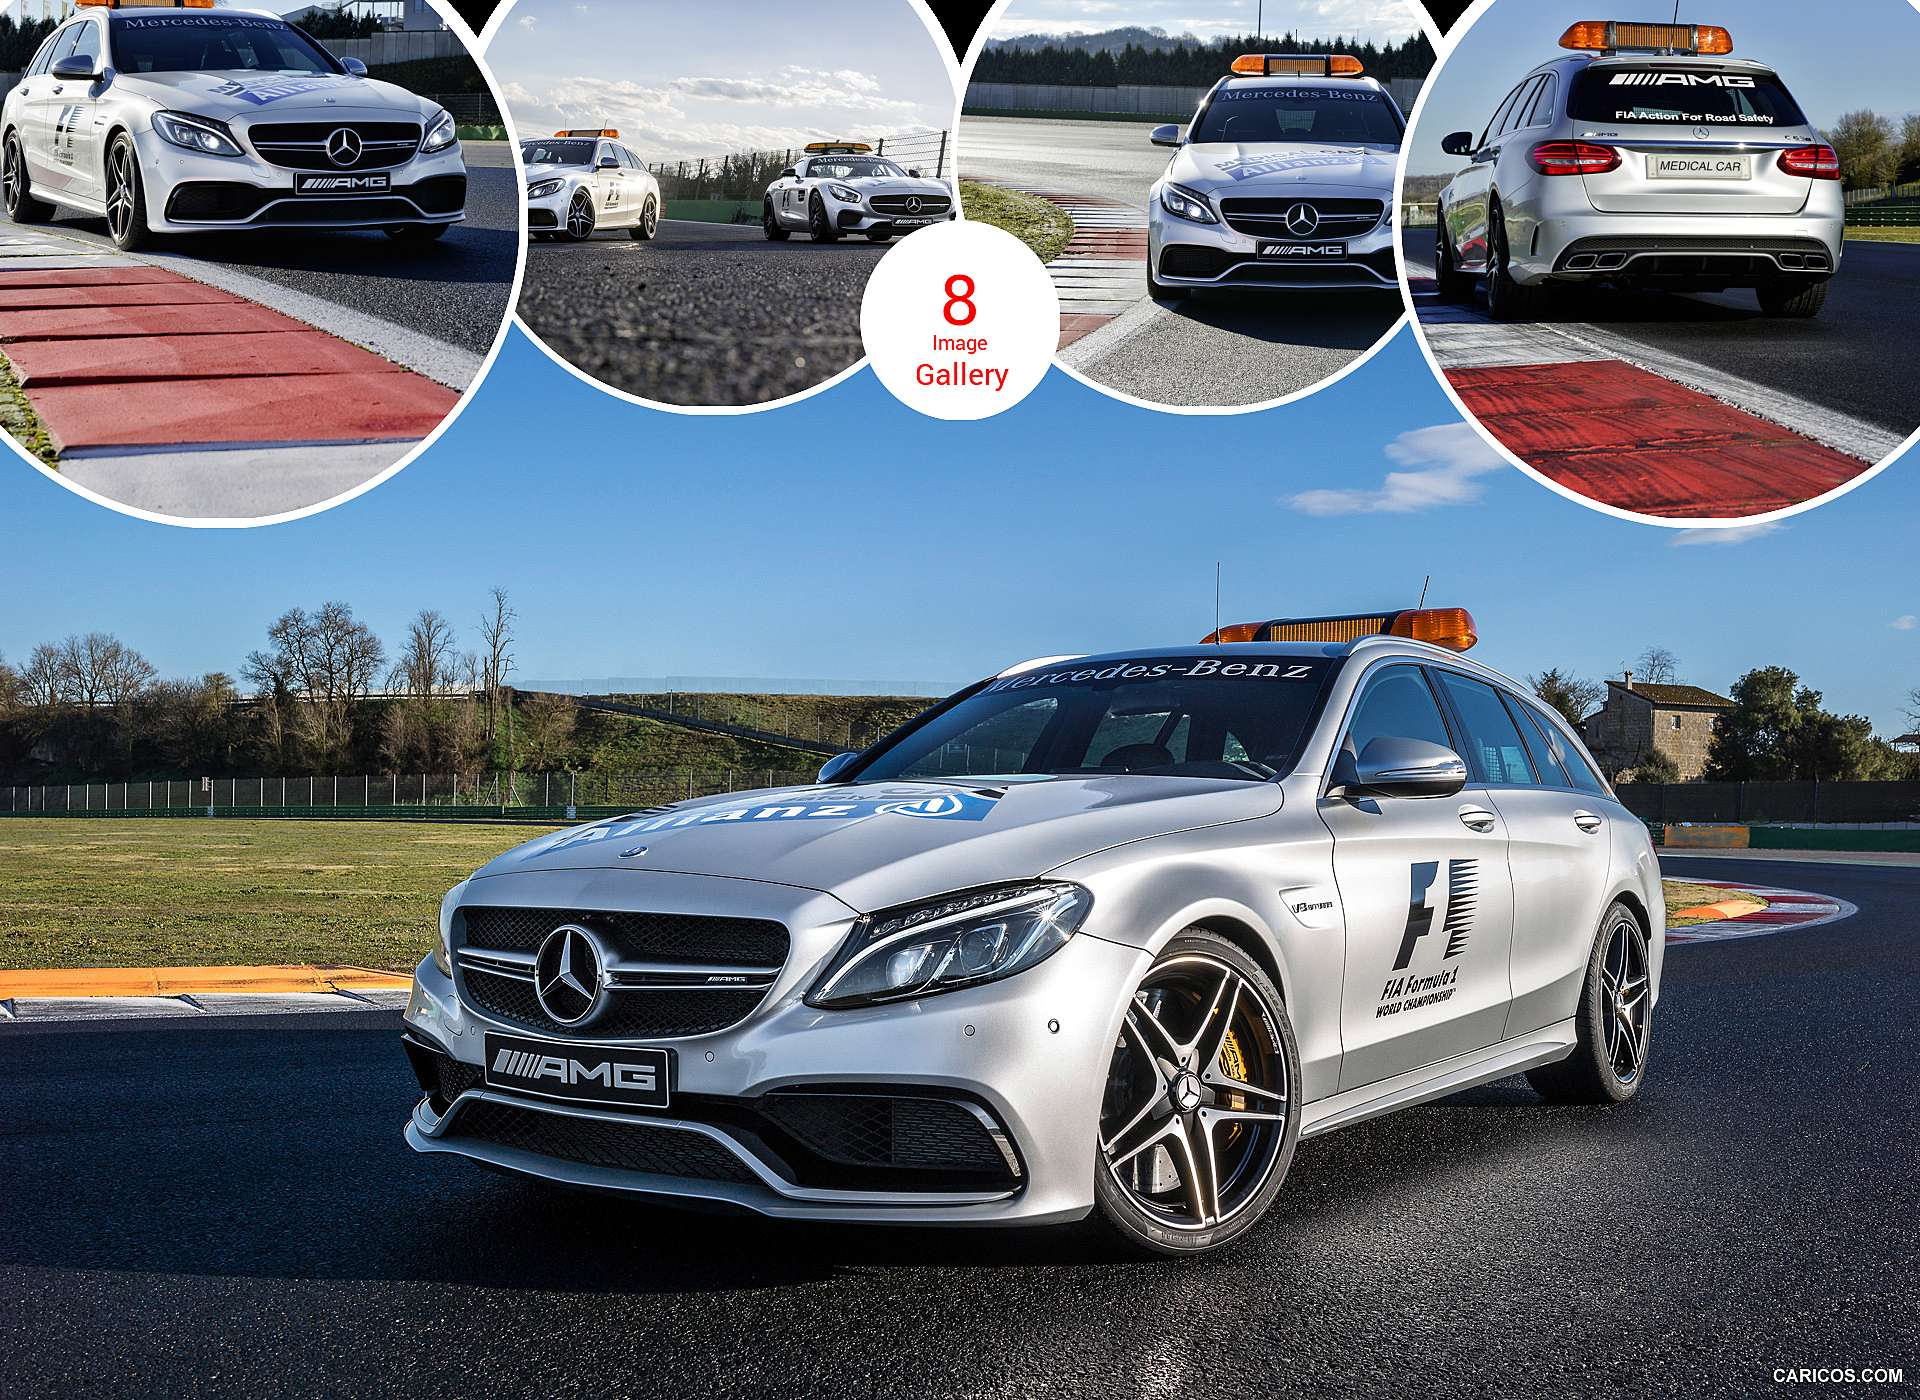 2015 Mercedes-AMG C63 S Estate F1 Medical Car